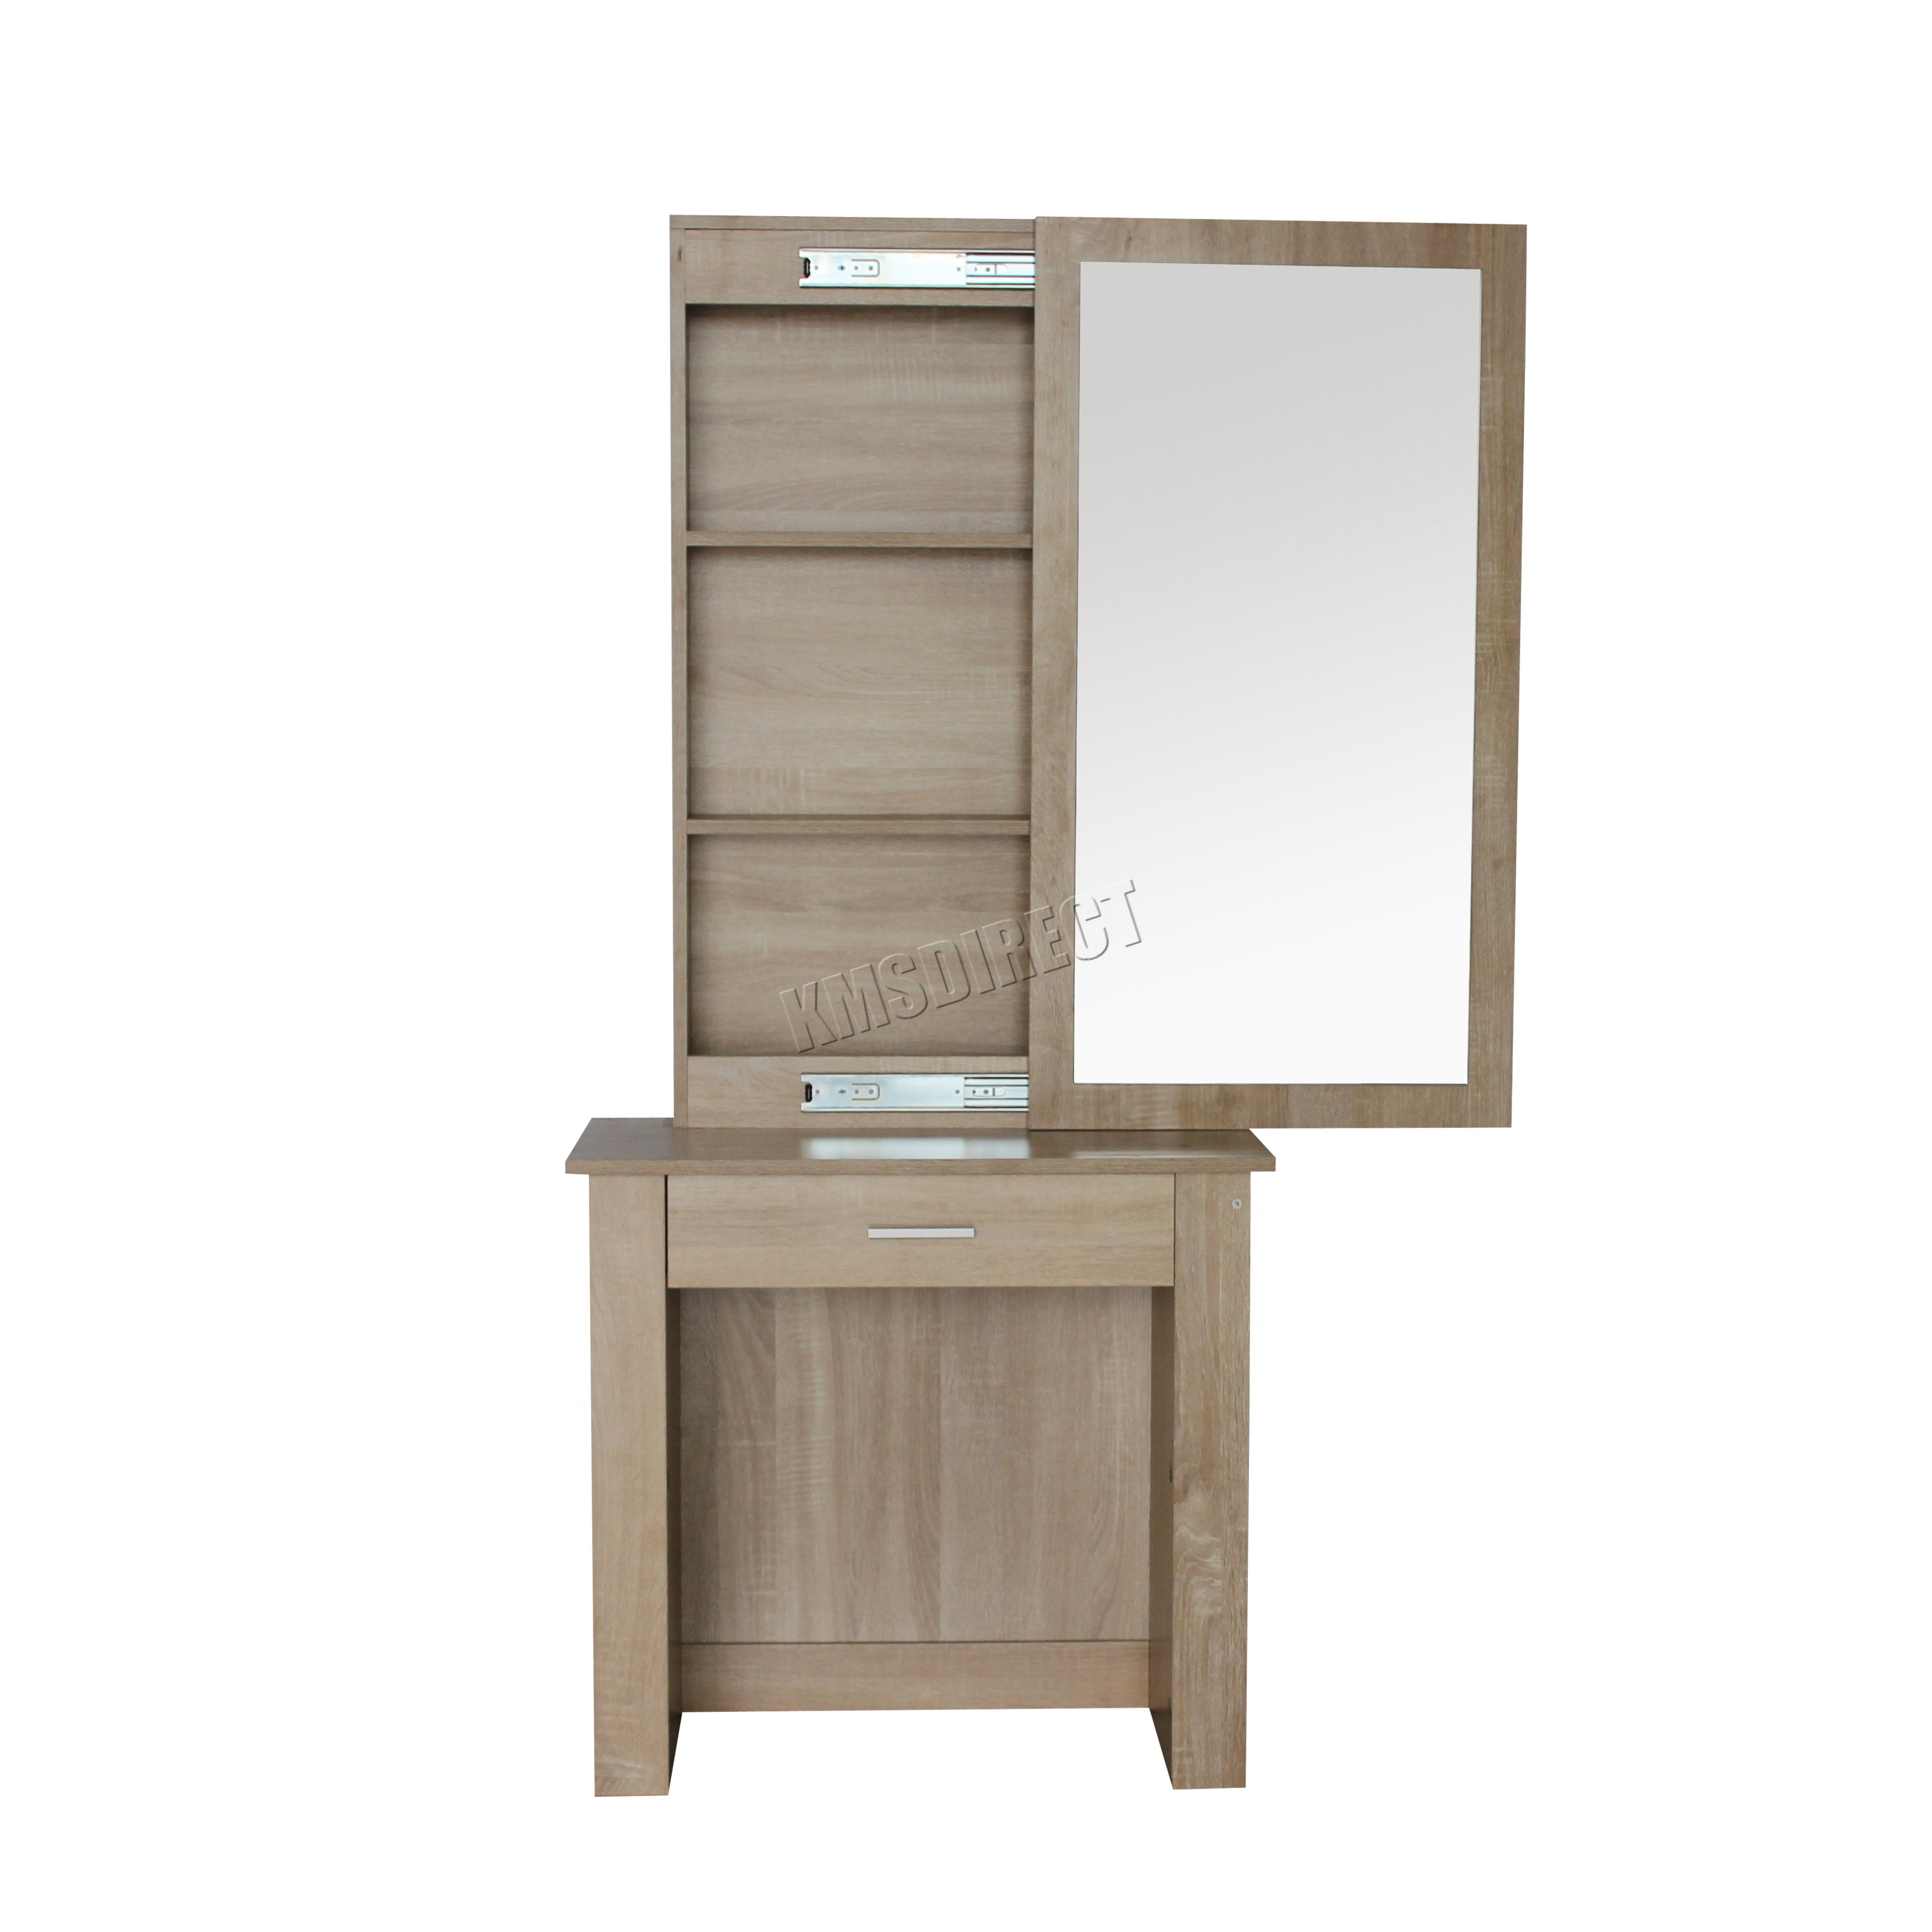 WestWood Wooden Makeup Jewelry Dressing Table With Sliding Mirror ... for Dressing Table Wooden Dressing Table Wooden Dresser  70ref